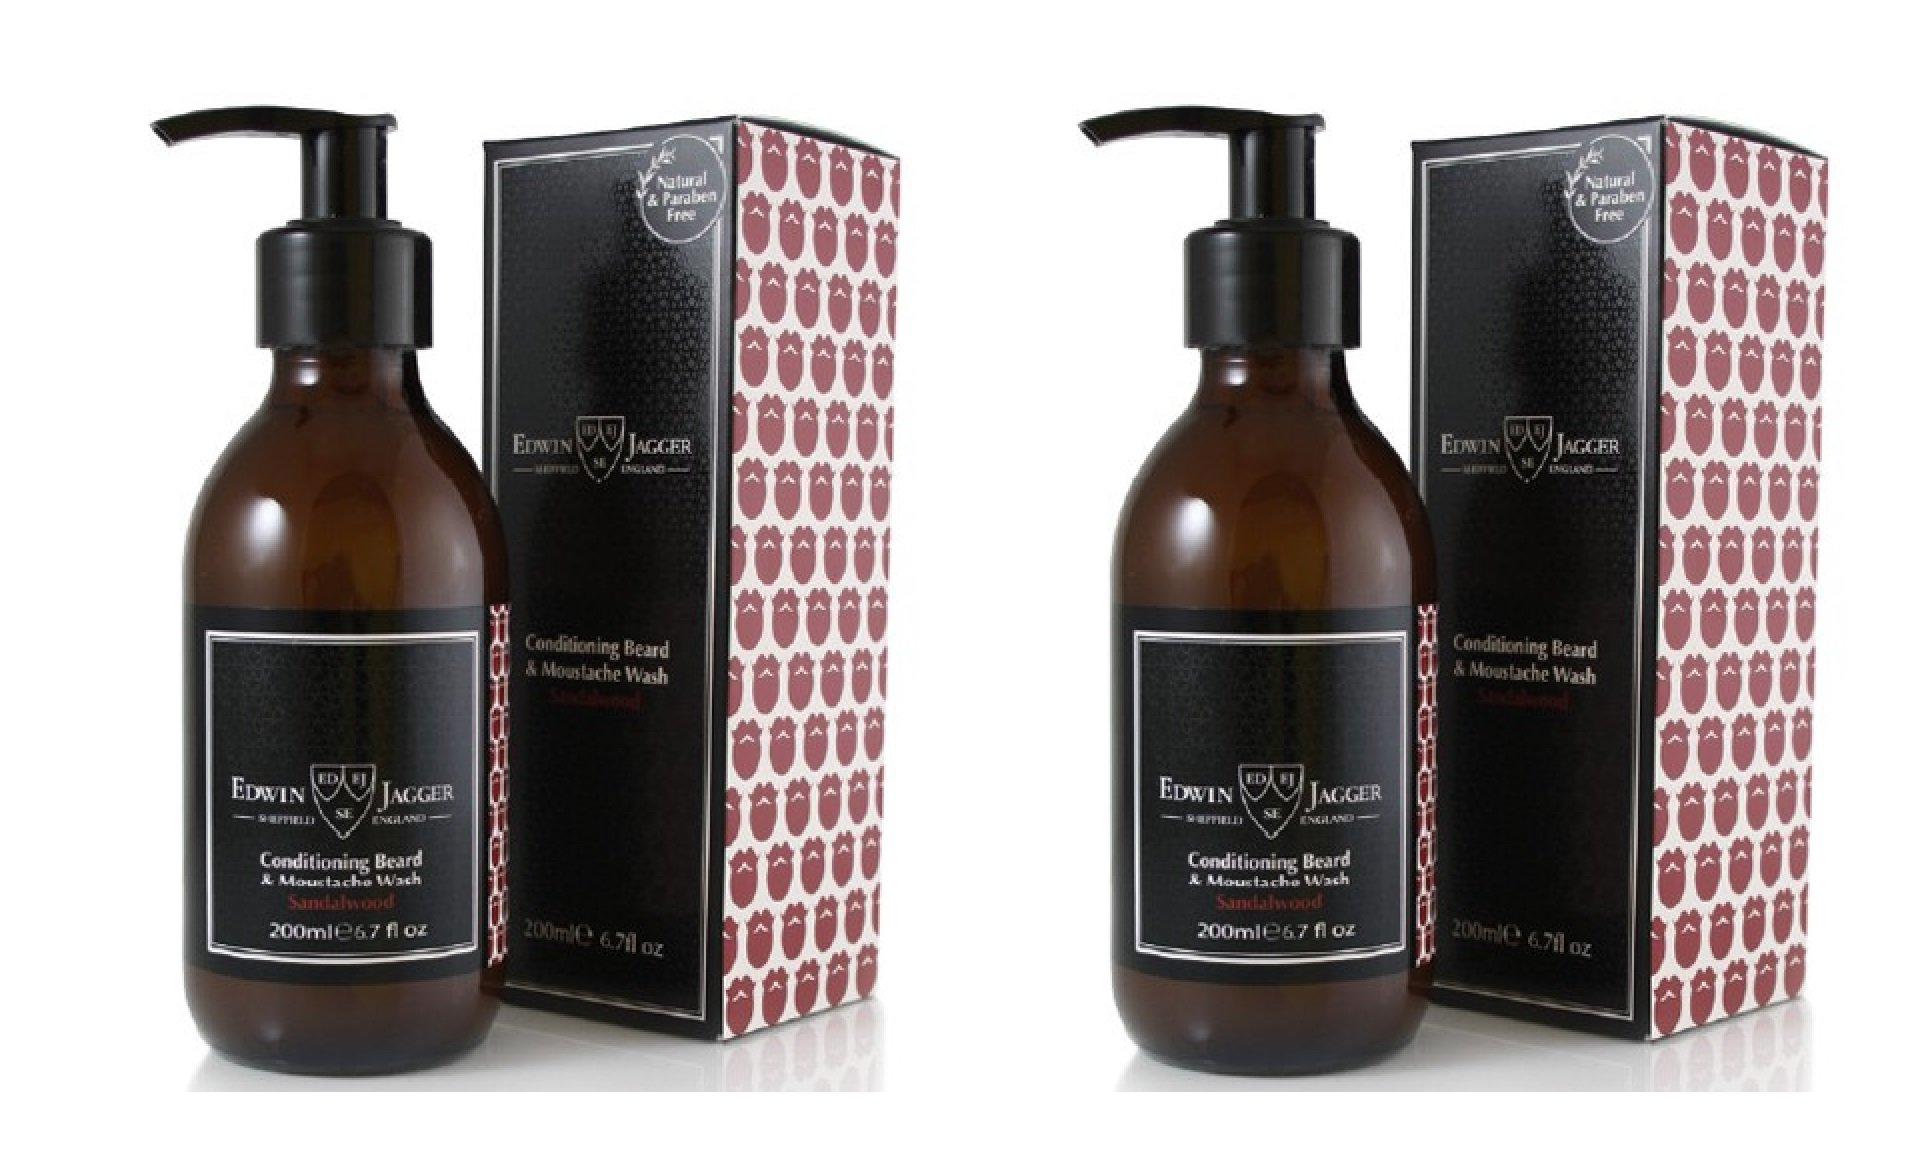 Edwin Jagger Beard and Moustache Care, Waxes, Washes & Accessories (2 Pack, Beard & Moustache Wash 200ml (Sandalwood))